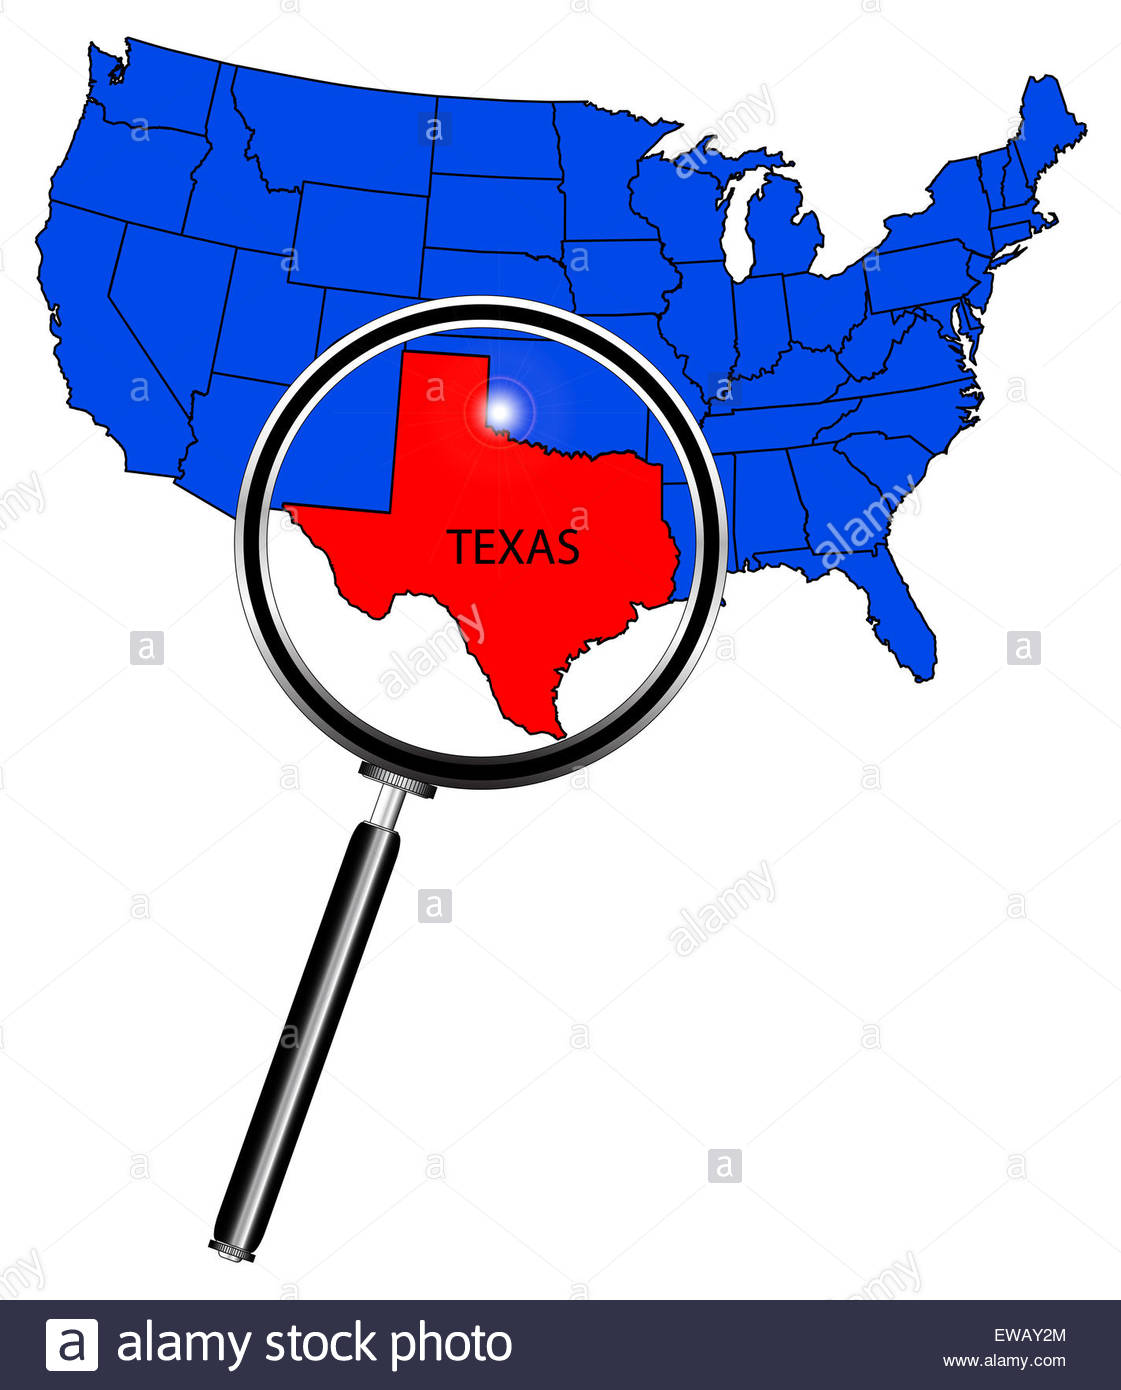 1121x1390 An Outline Map Of The United States Of America With Texas